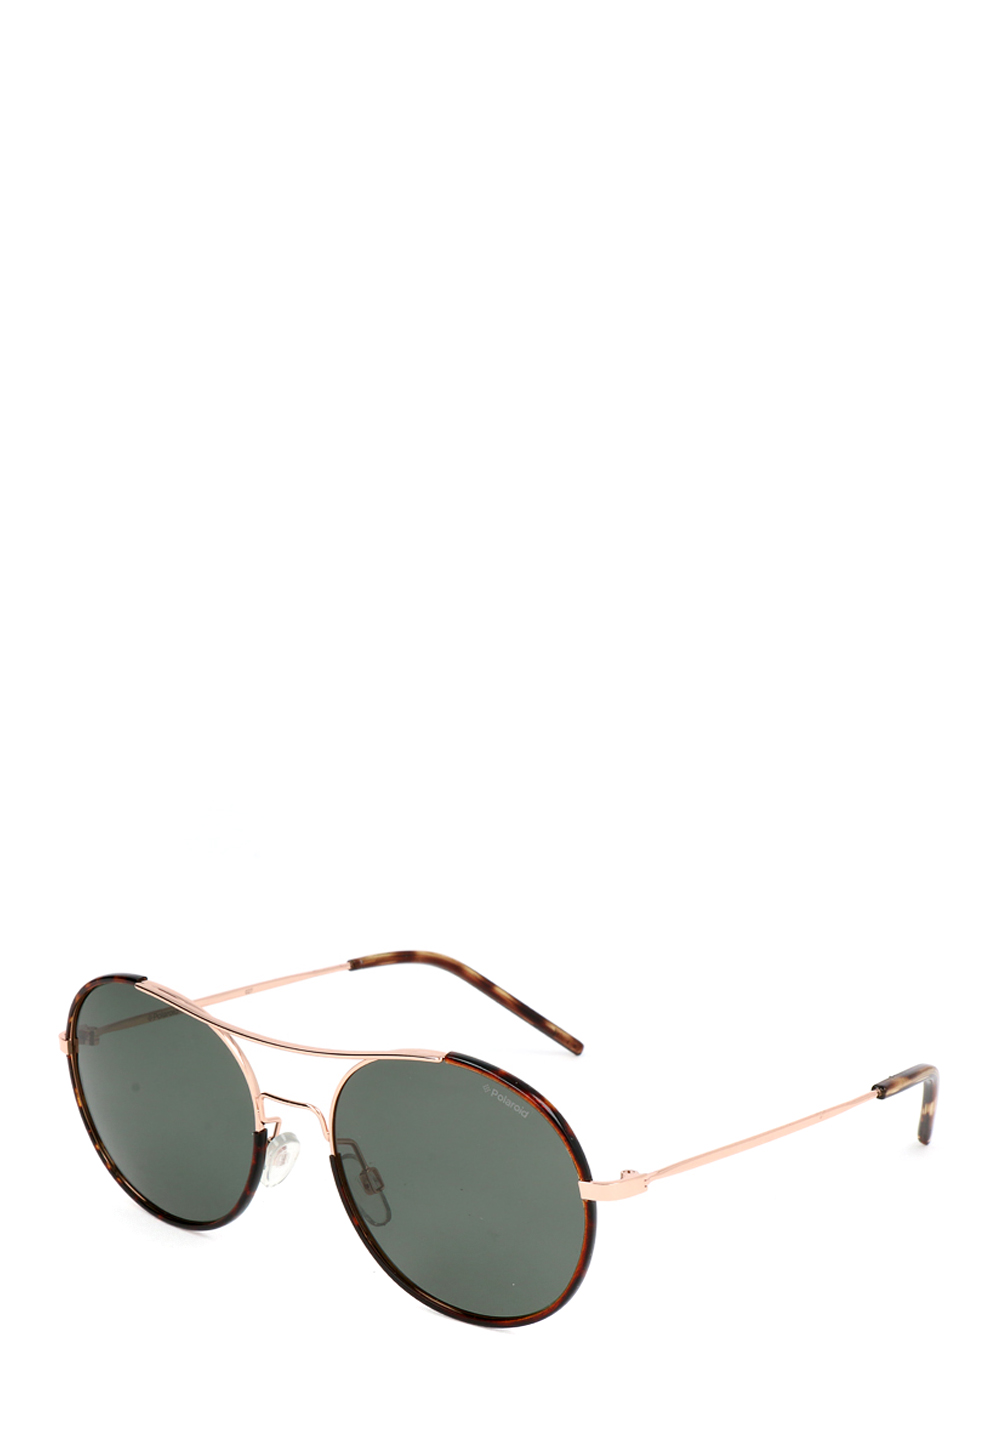 Sonnenbrille Pld1021/S, polarized, Uv400, copper gold